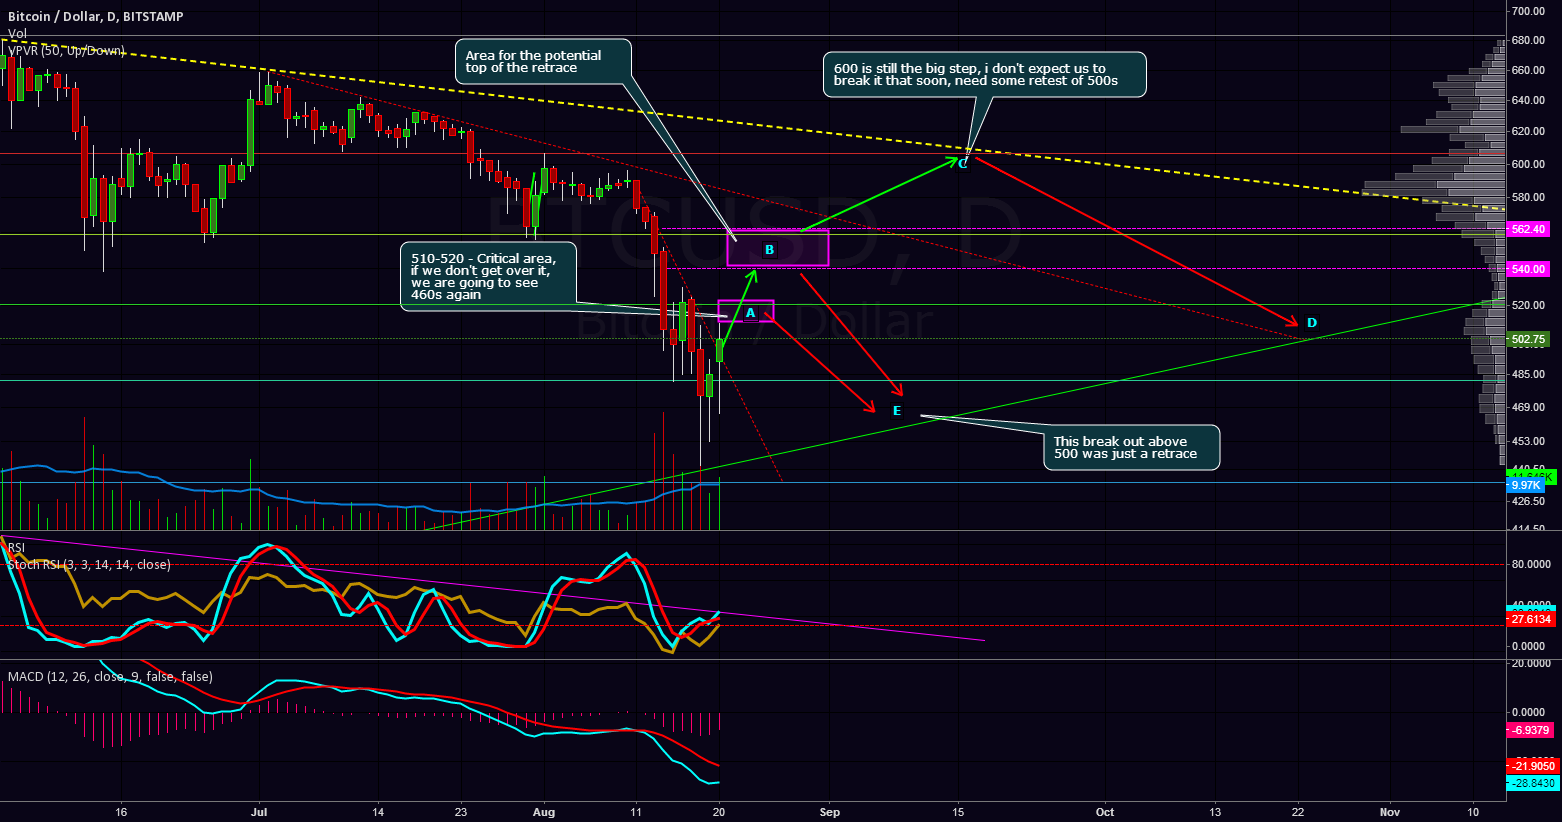 Short term downtrend is over, expecting 540-560.